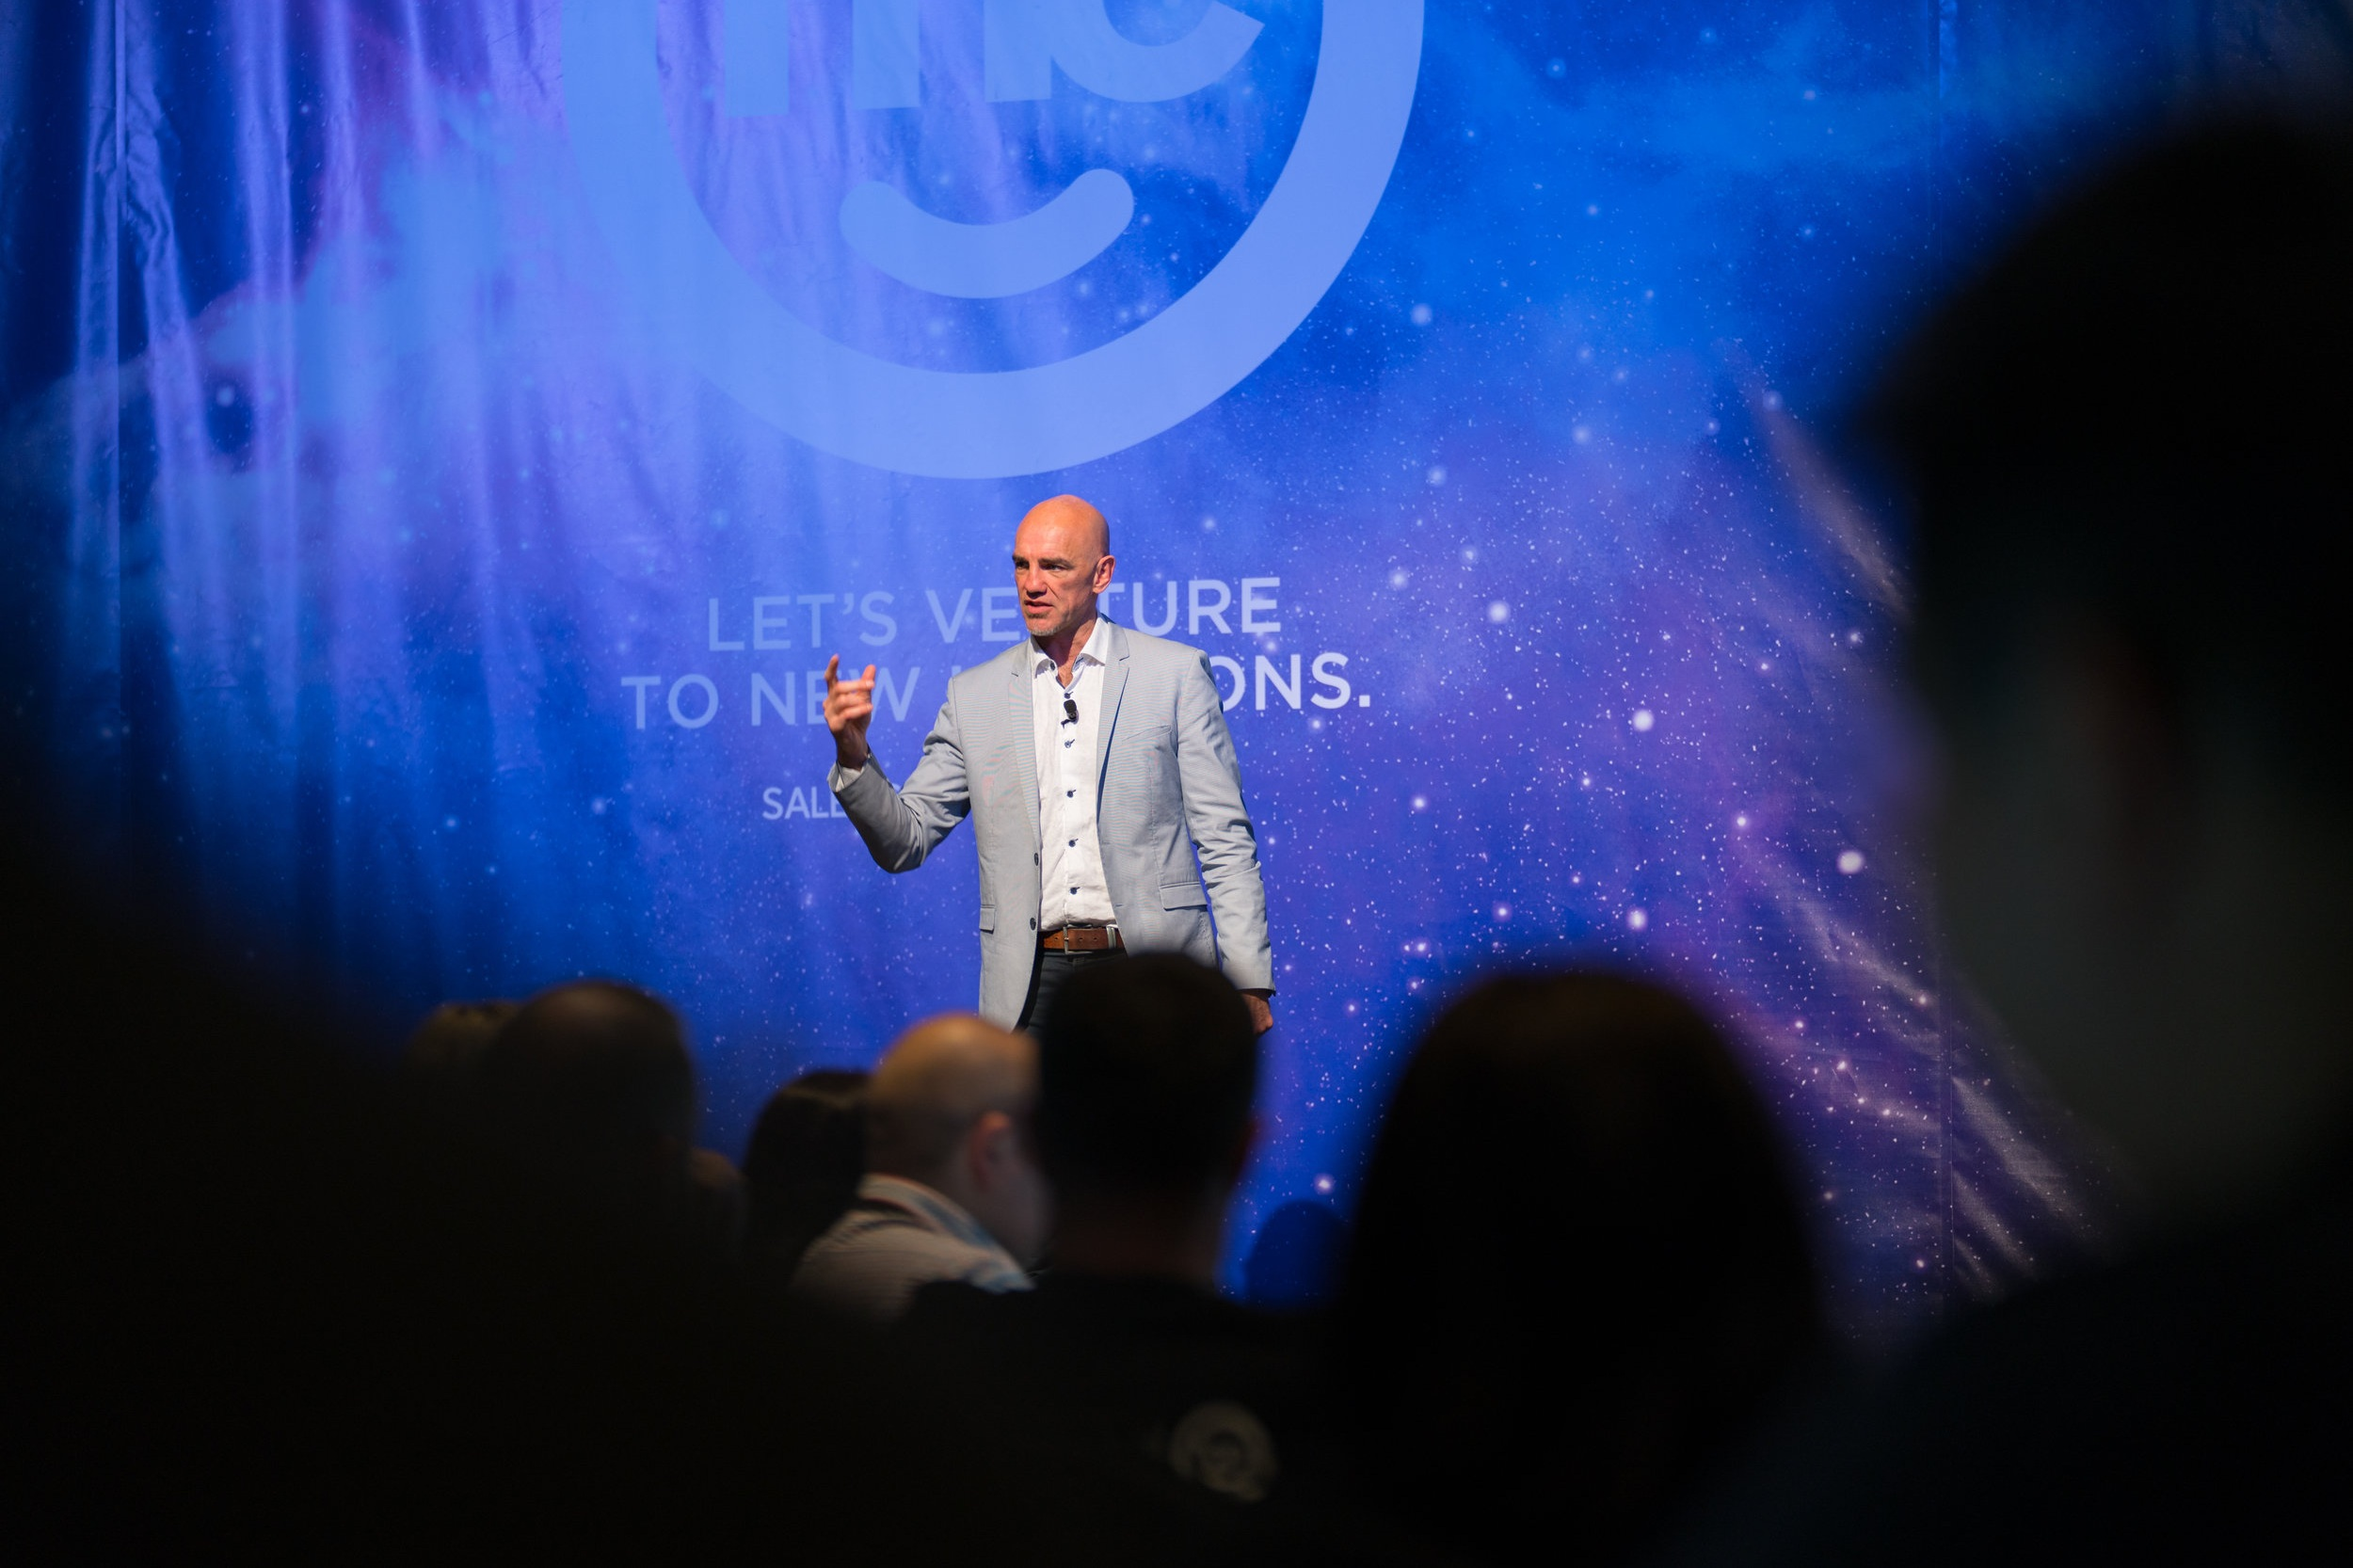 BOOST YOUR NEXT CONFERENCE WITH PAUL TAYLOR -